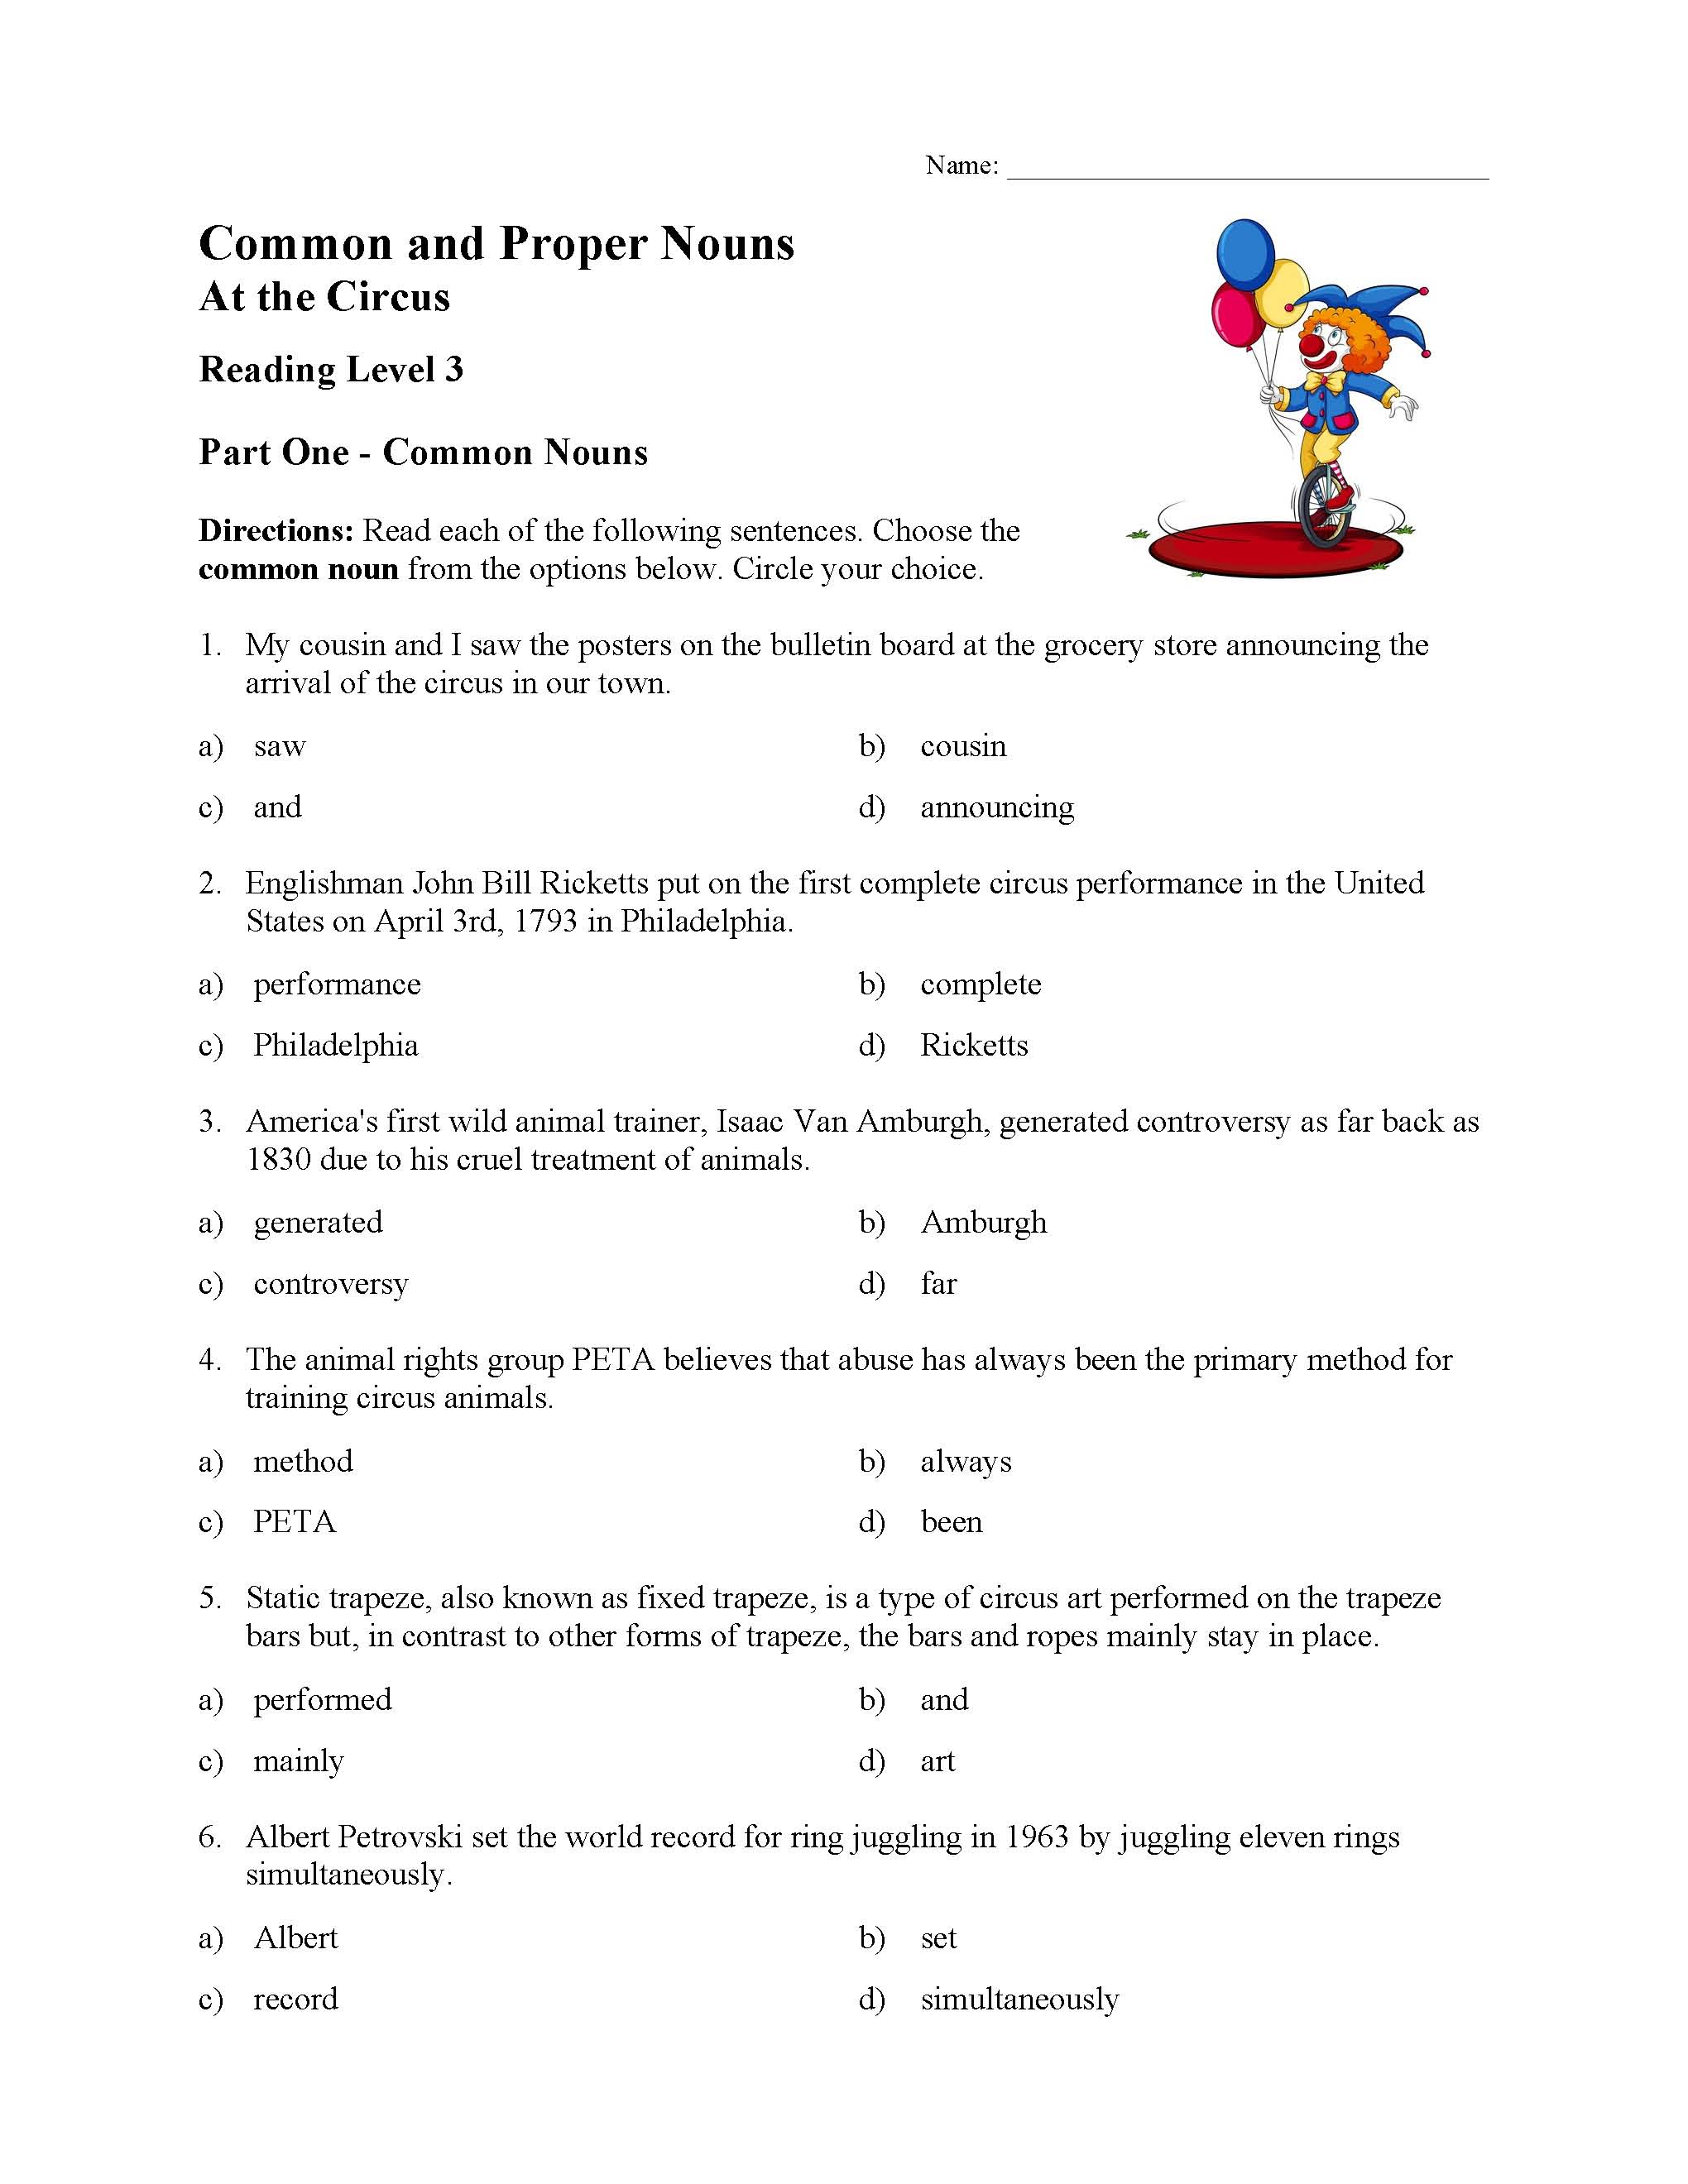 Common And Proper Nouns Test 3 Reading Level 3 Preview